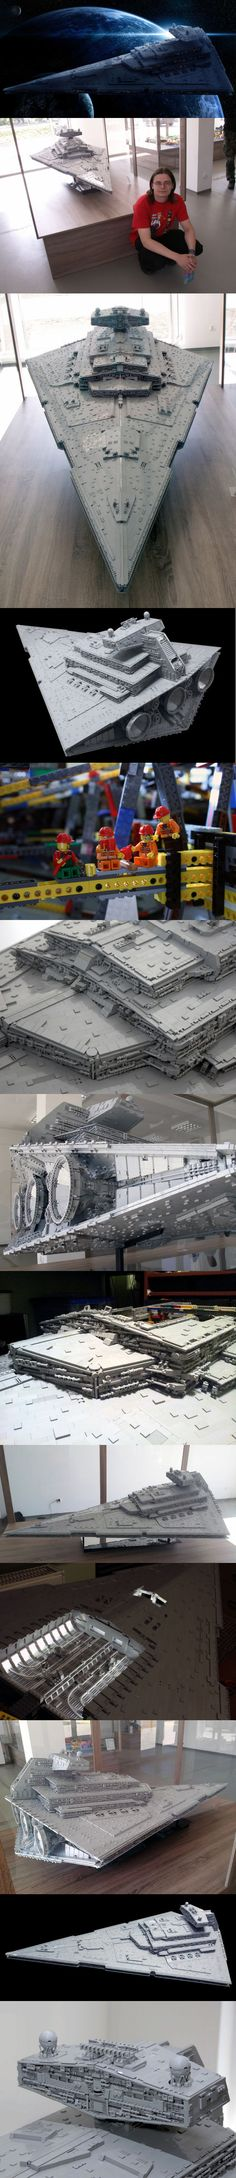 The biggest, most accurate Lego Imperial Star Destroyer ever built More than 40,000 bricks. 110 pounds (50 kilograms). 6.62 feet long (2.02 meters). 4.1 feet wide (1.25 meters). 1.9 feet tall (58 centimeters). Eight months of design and building. Those are the stats for the biggest, most accurate Lego Imperial Star Destroyer ever built.